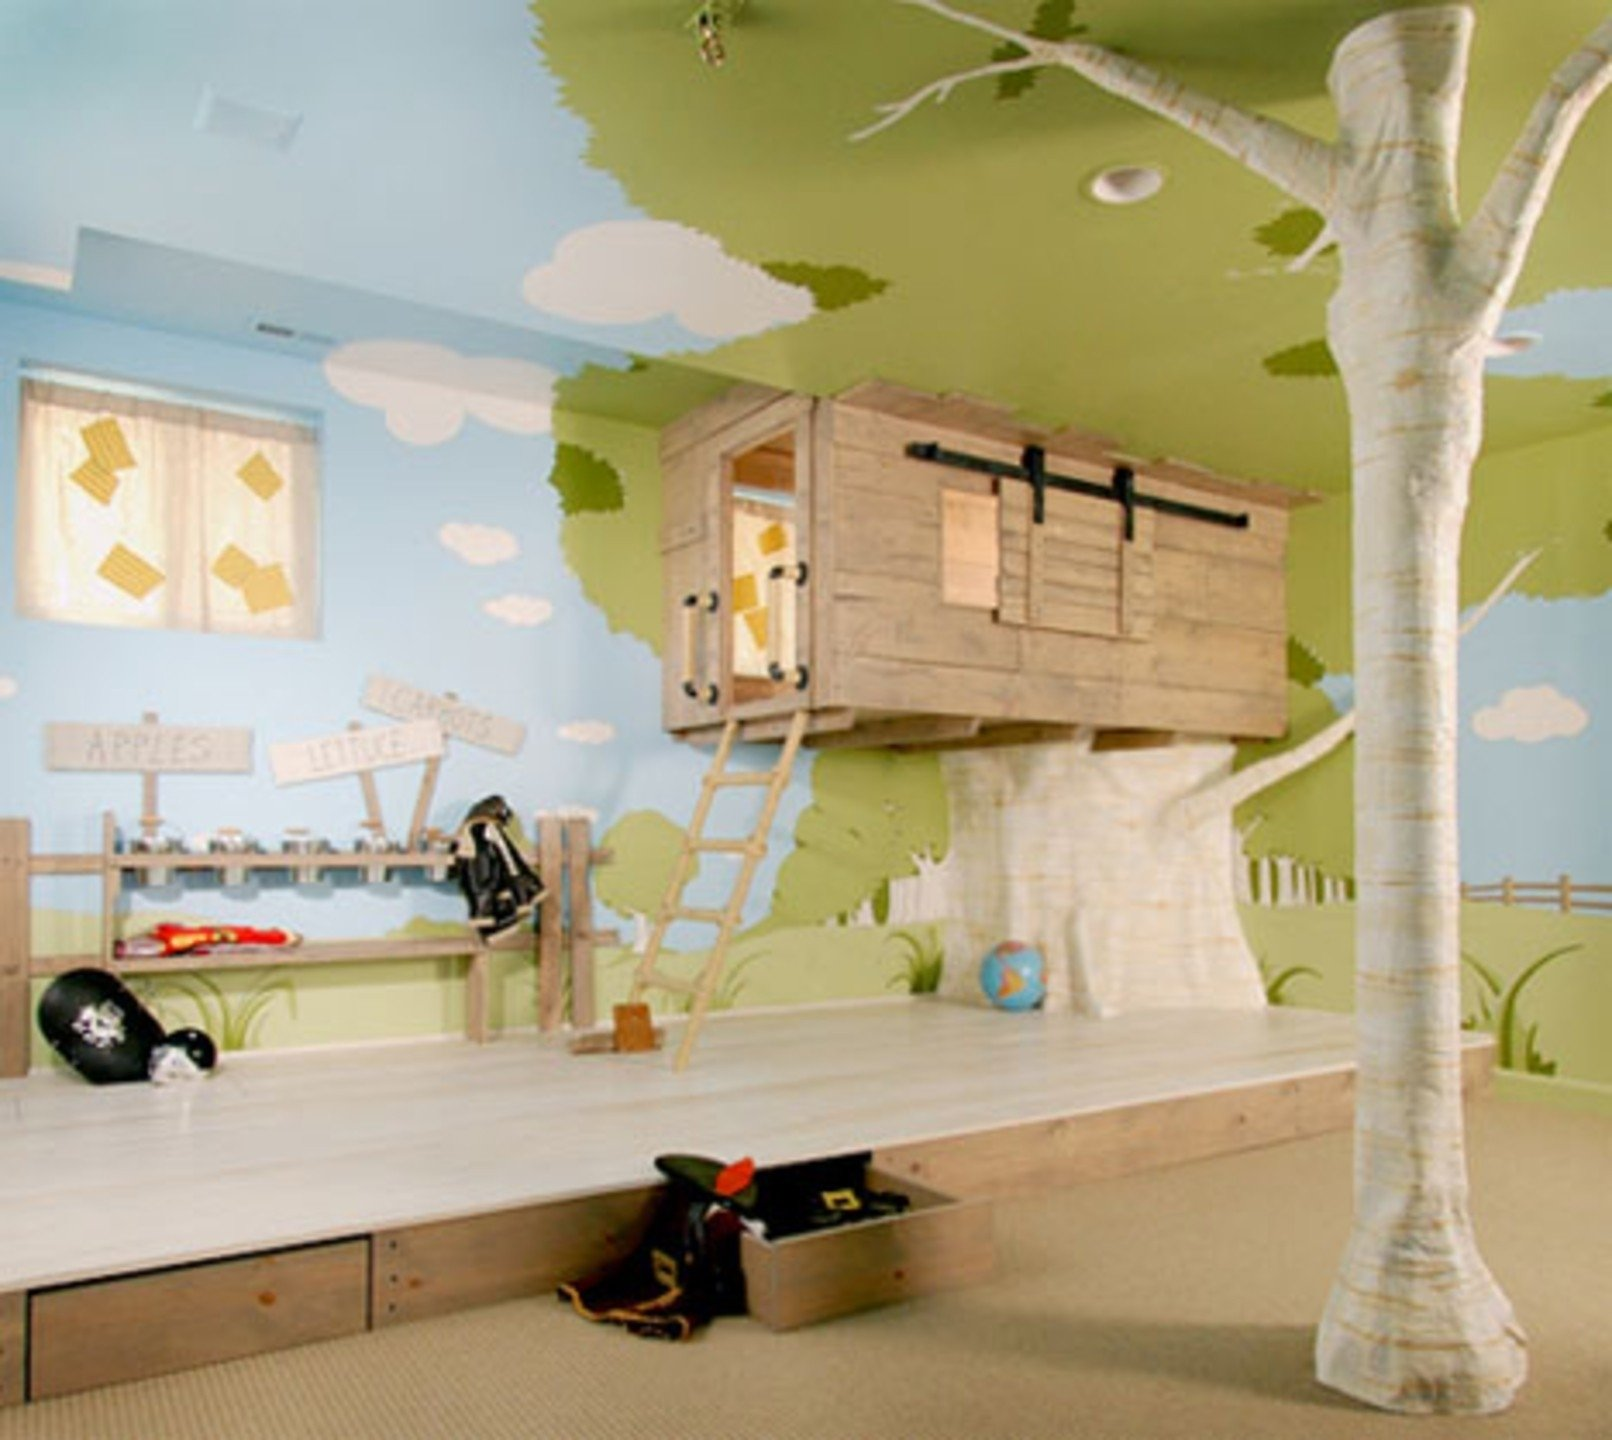 10 Stunning Kids Room Ideas For Boys cool kids bedroom ideas for boys boys kids bedroom idea kids room